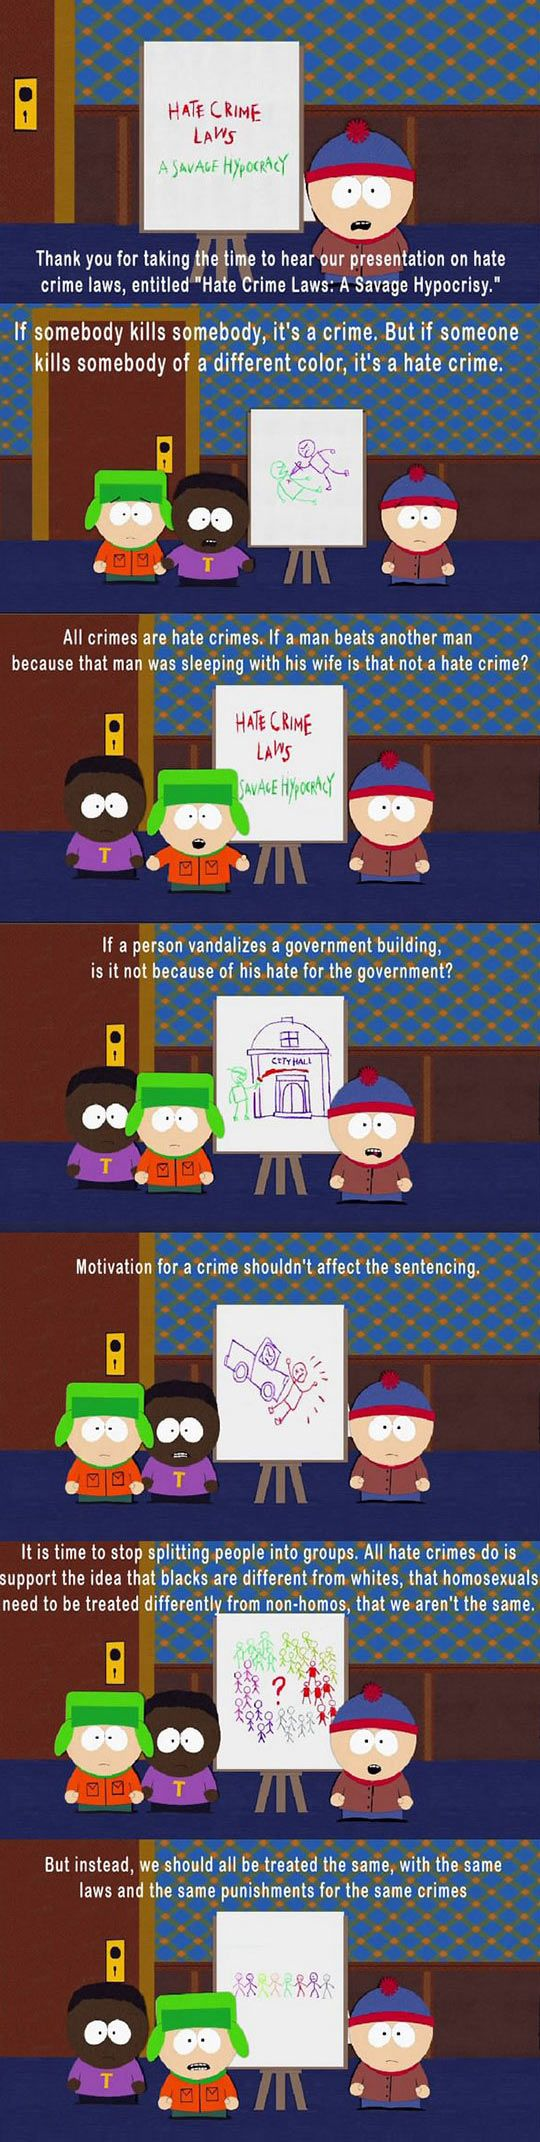 South Park Nails It, Hypocrisy of Hate Crime Laws